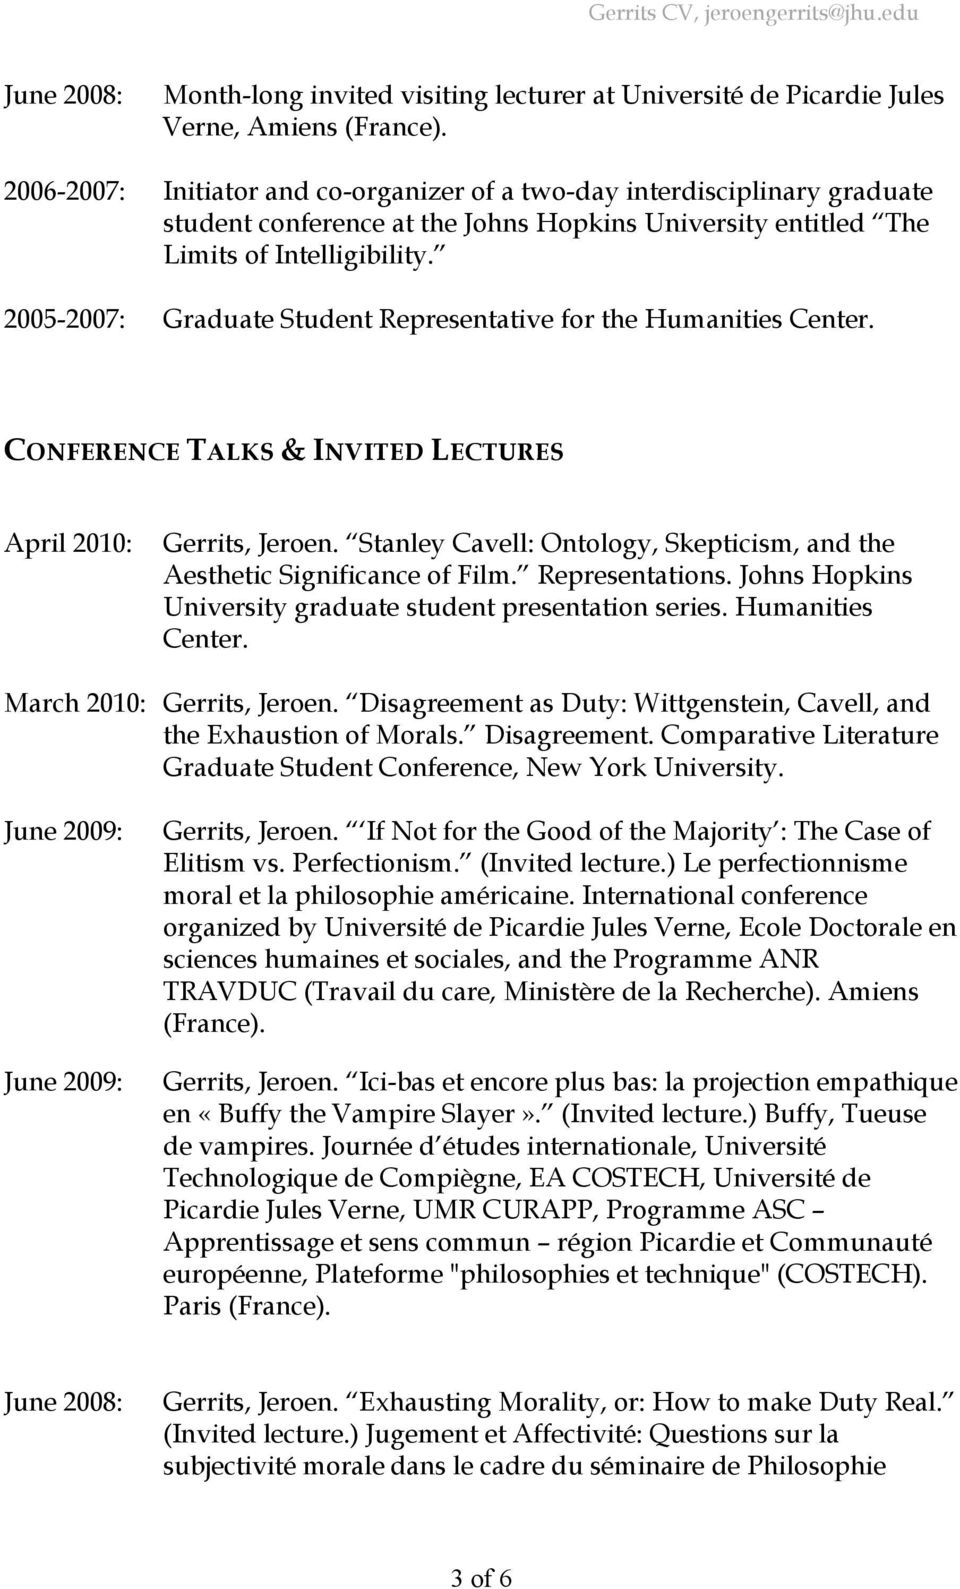 2005-2007: Graduate Student Representative for the Humanities Center. CONFERENCE TALKS & INVITED LECTURES April 2010: Gerrits, Jeroen.